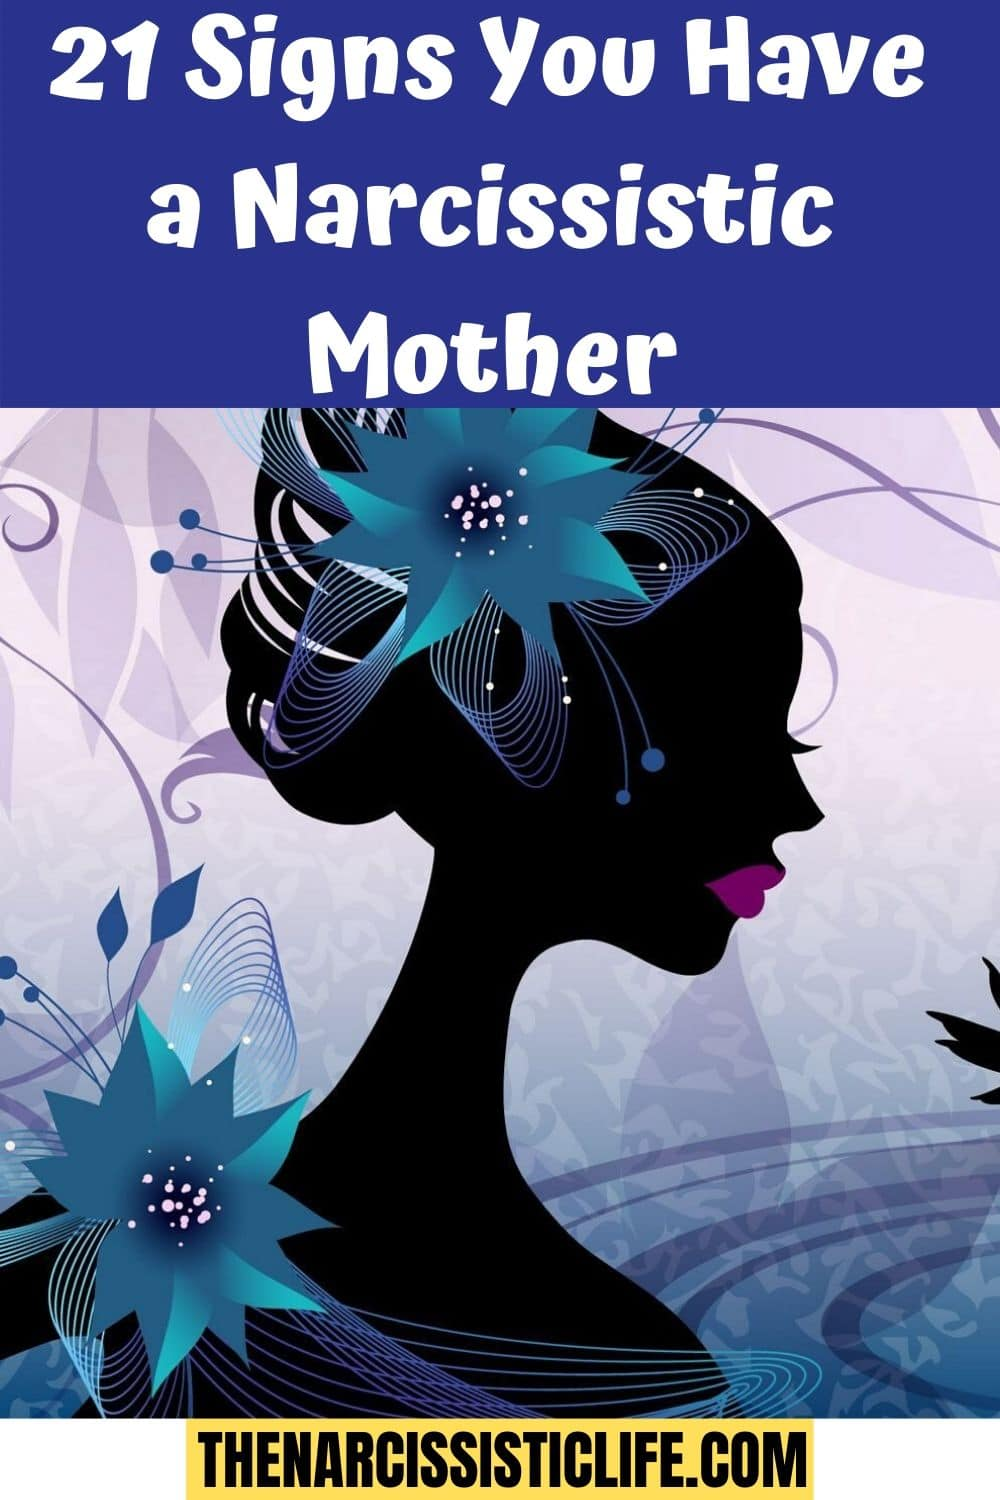 21 Signs Of A Narcissistic Mother What Are The Signs Of A Narcissistic Mother